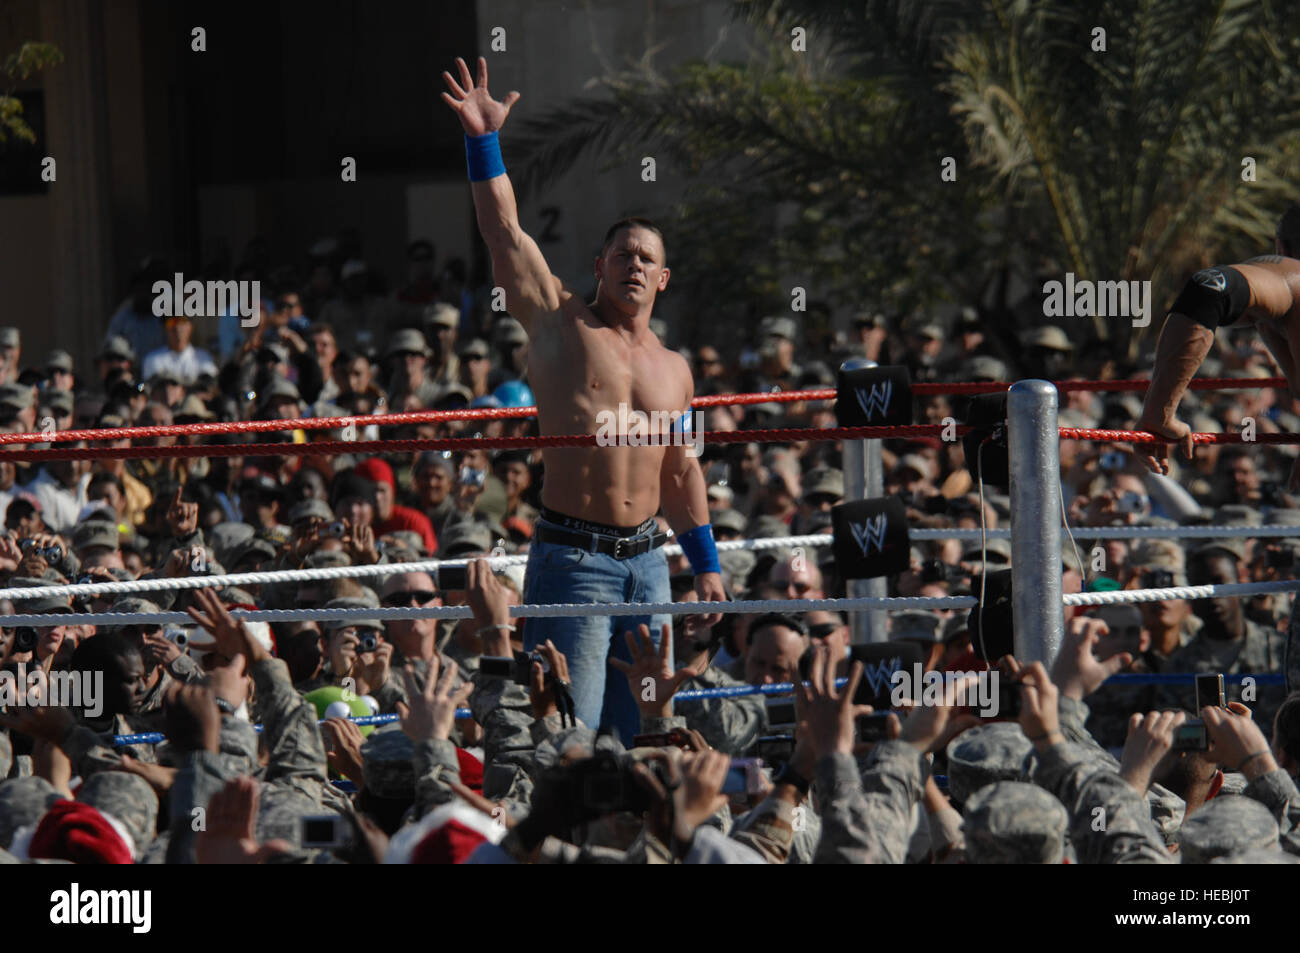 World Wrestling Entertainment Wrestler John Cena Greets The Crowd During WWE Show Sponsored By